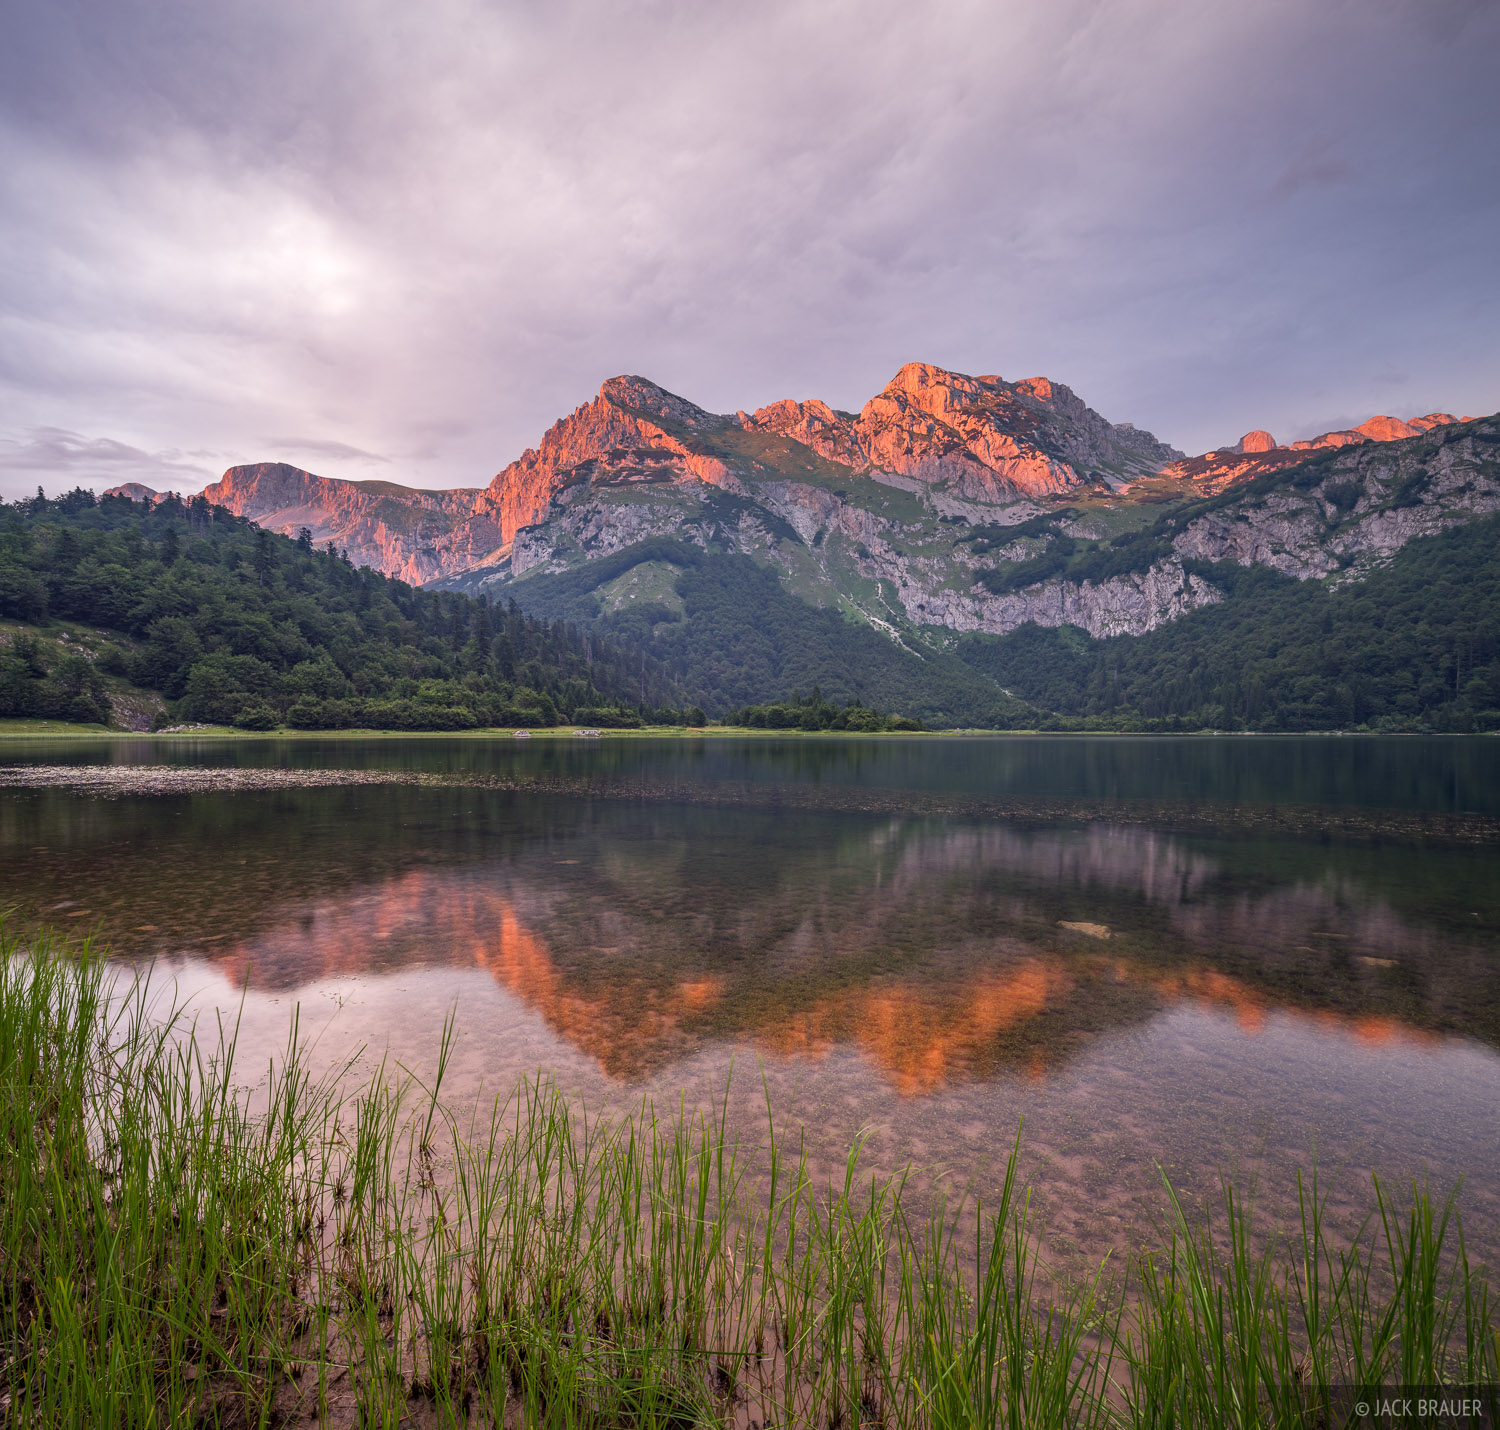 Sunset light on Maglic and nearby mountains, as seen at Trnovacko Lake, in Montenegro just across the border from Bosnia.